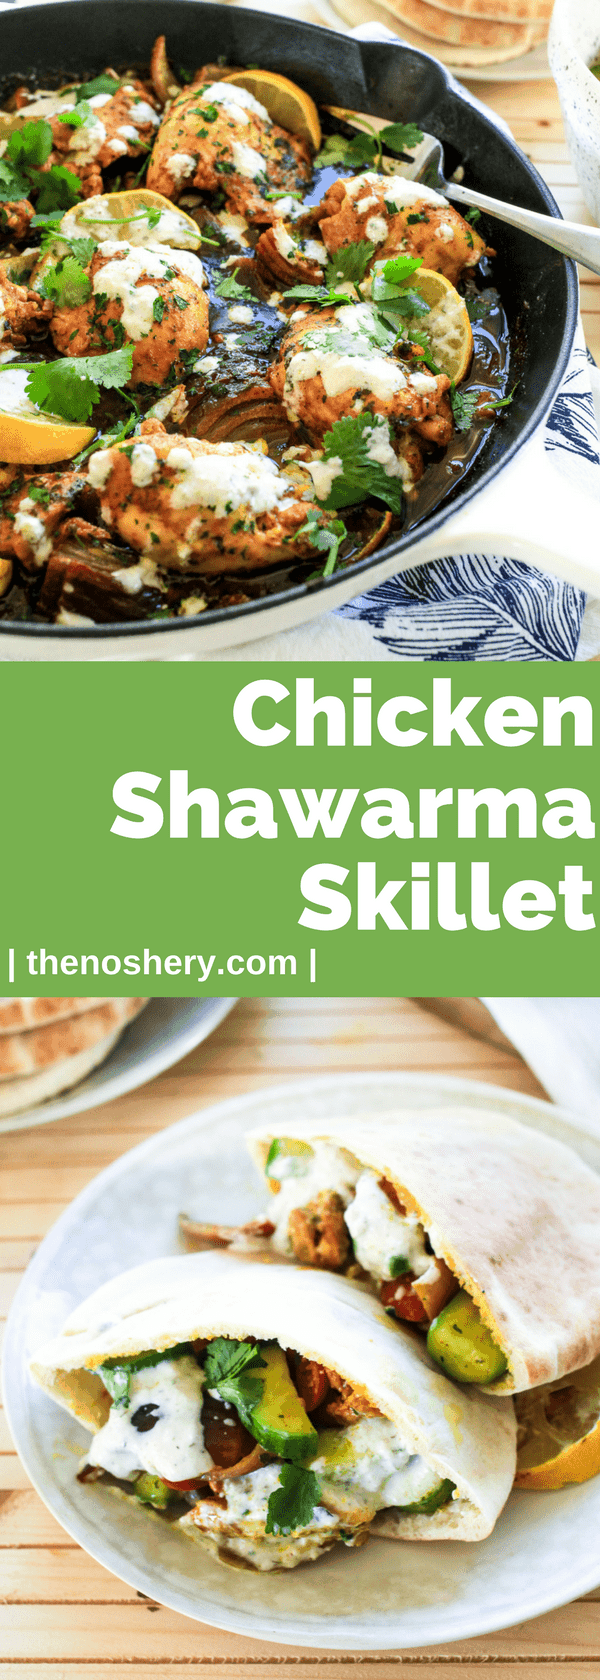 Chicken Shawarma Skillet | This baked chicken shawarma skillet is an adaptation of the popular middle eastern street food. This flavor bomb is the perfect weeknight meal. | The Noshery